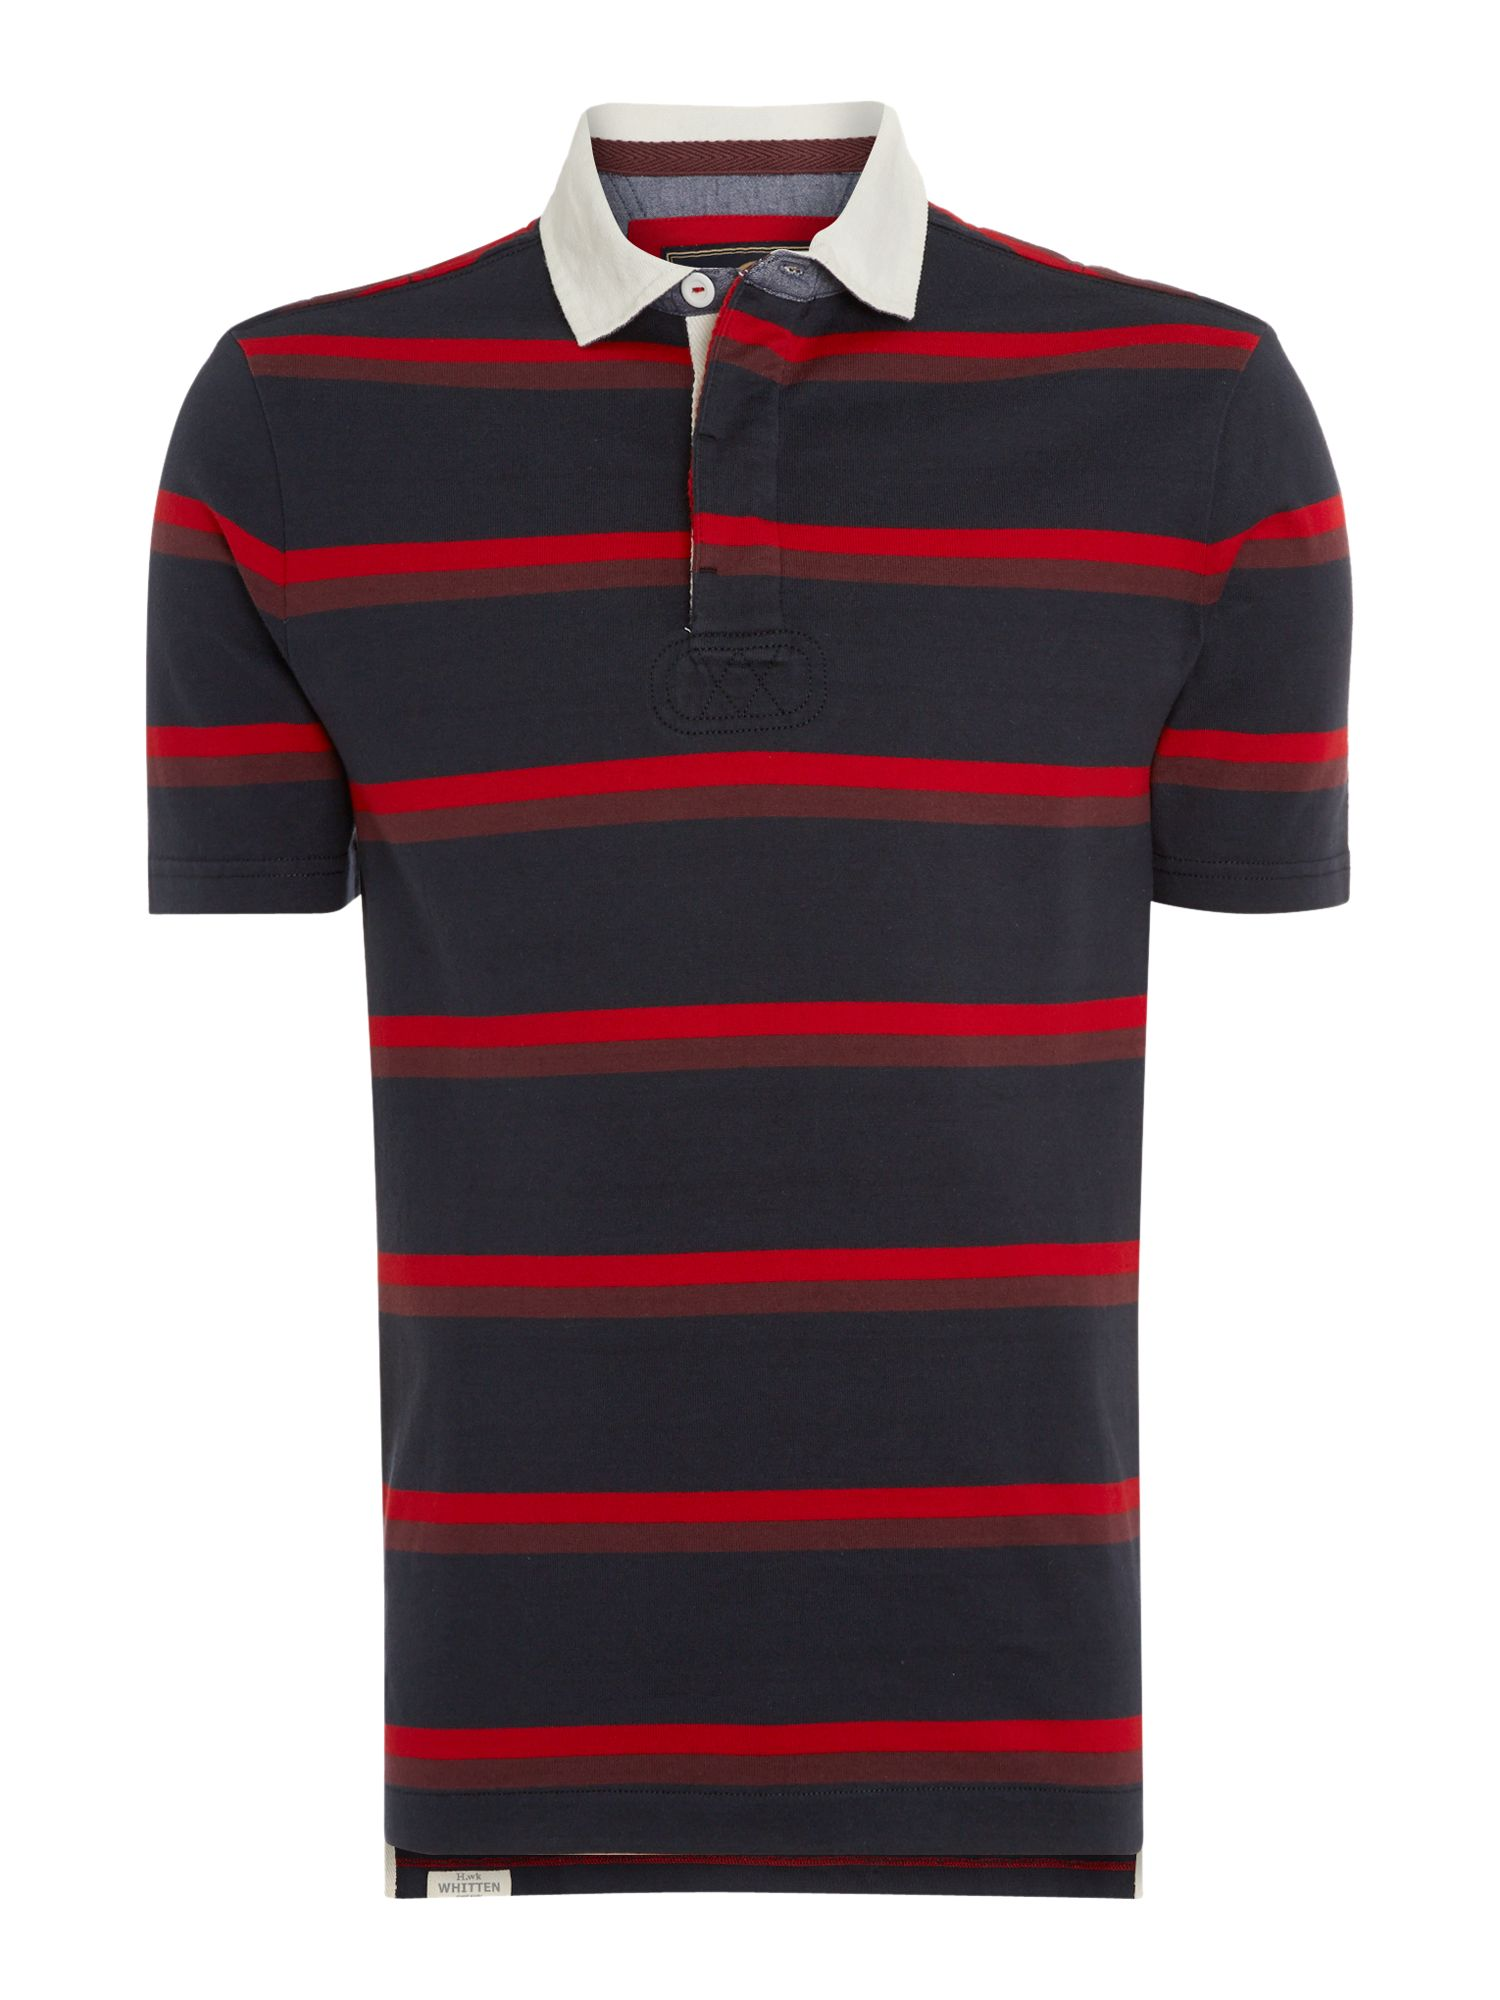 whitten stripe rugby